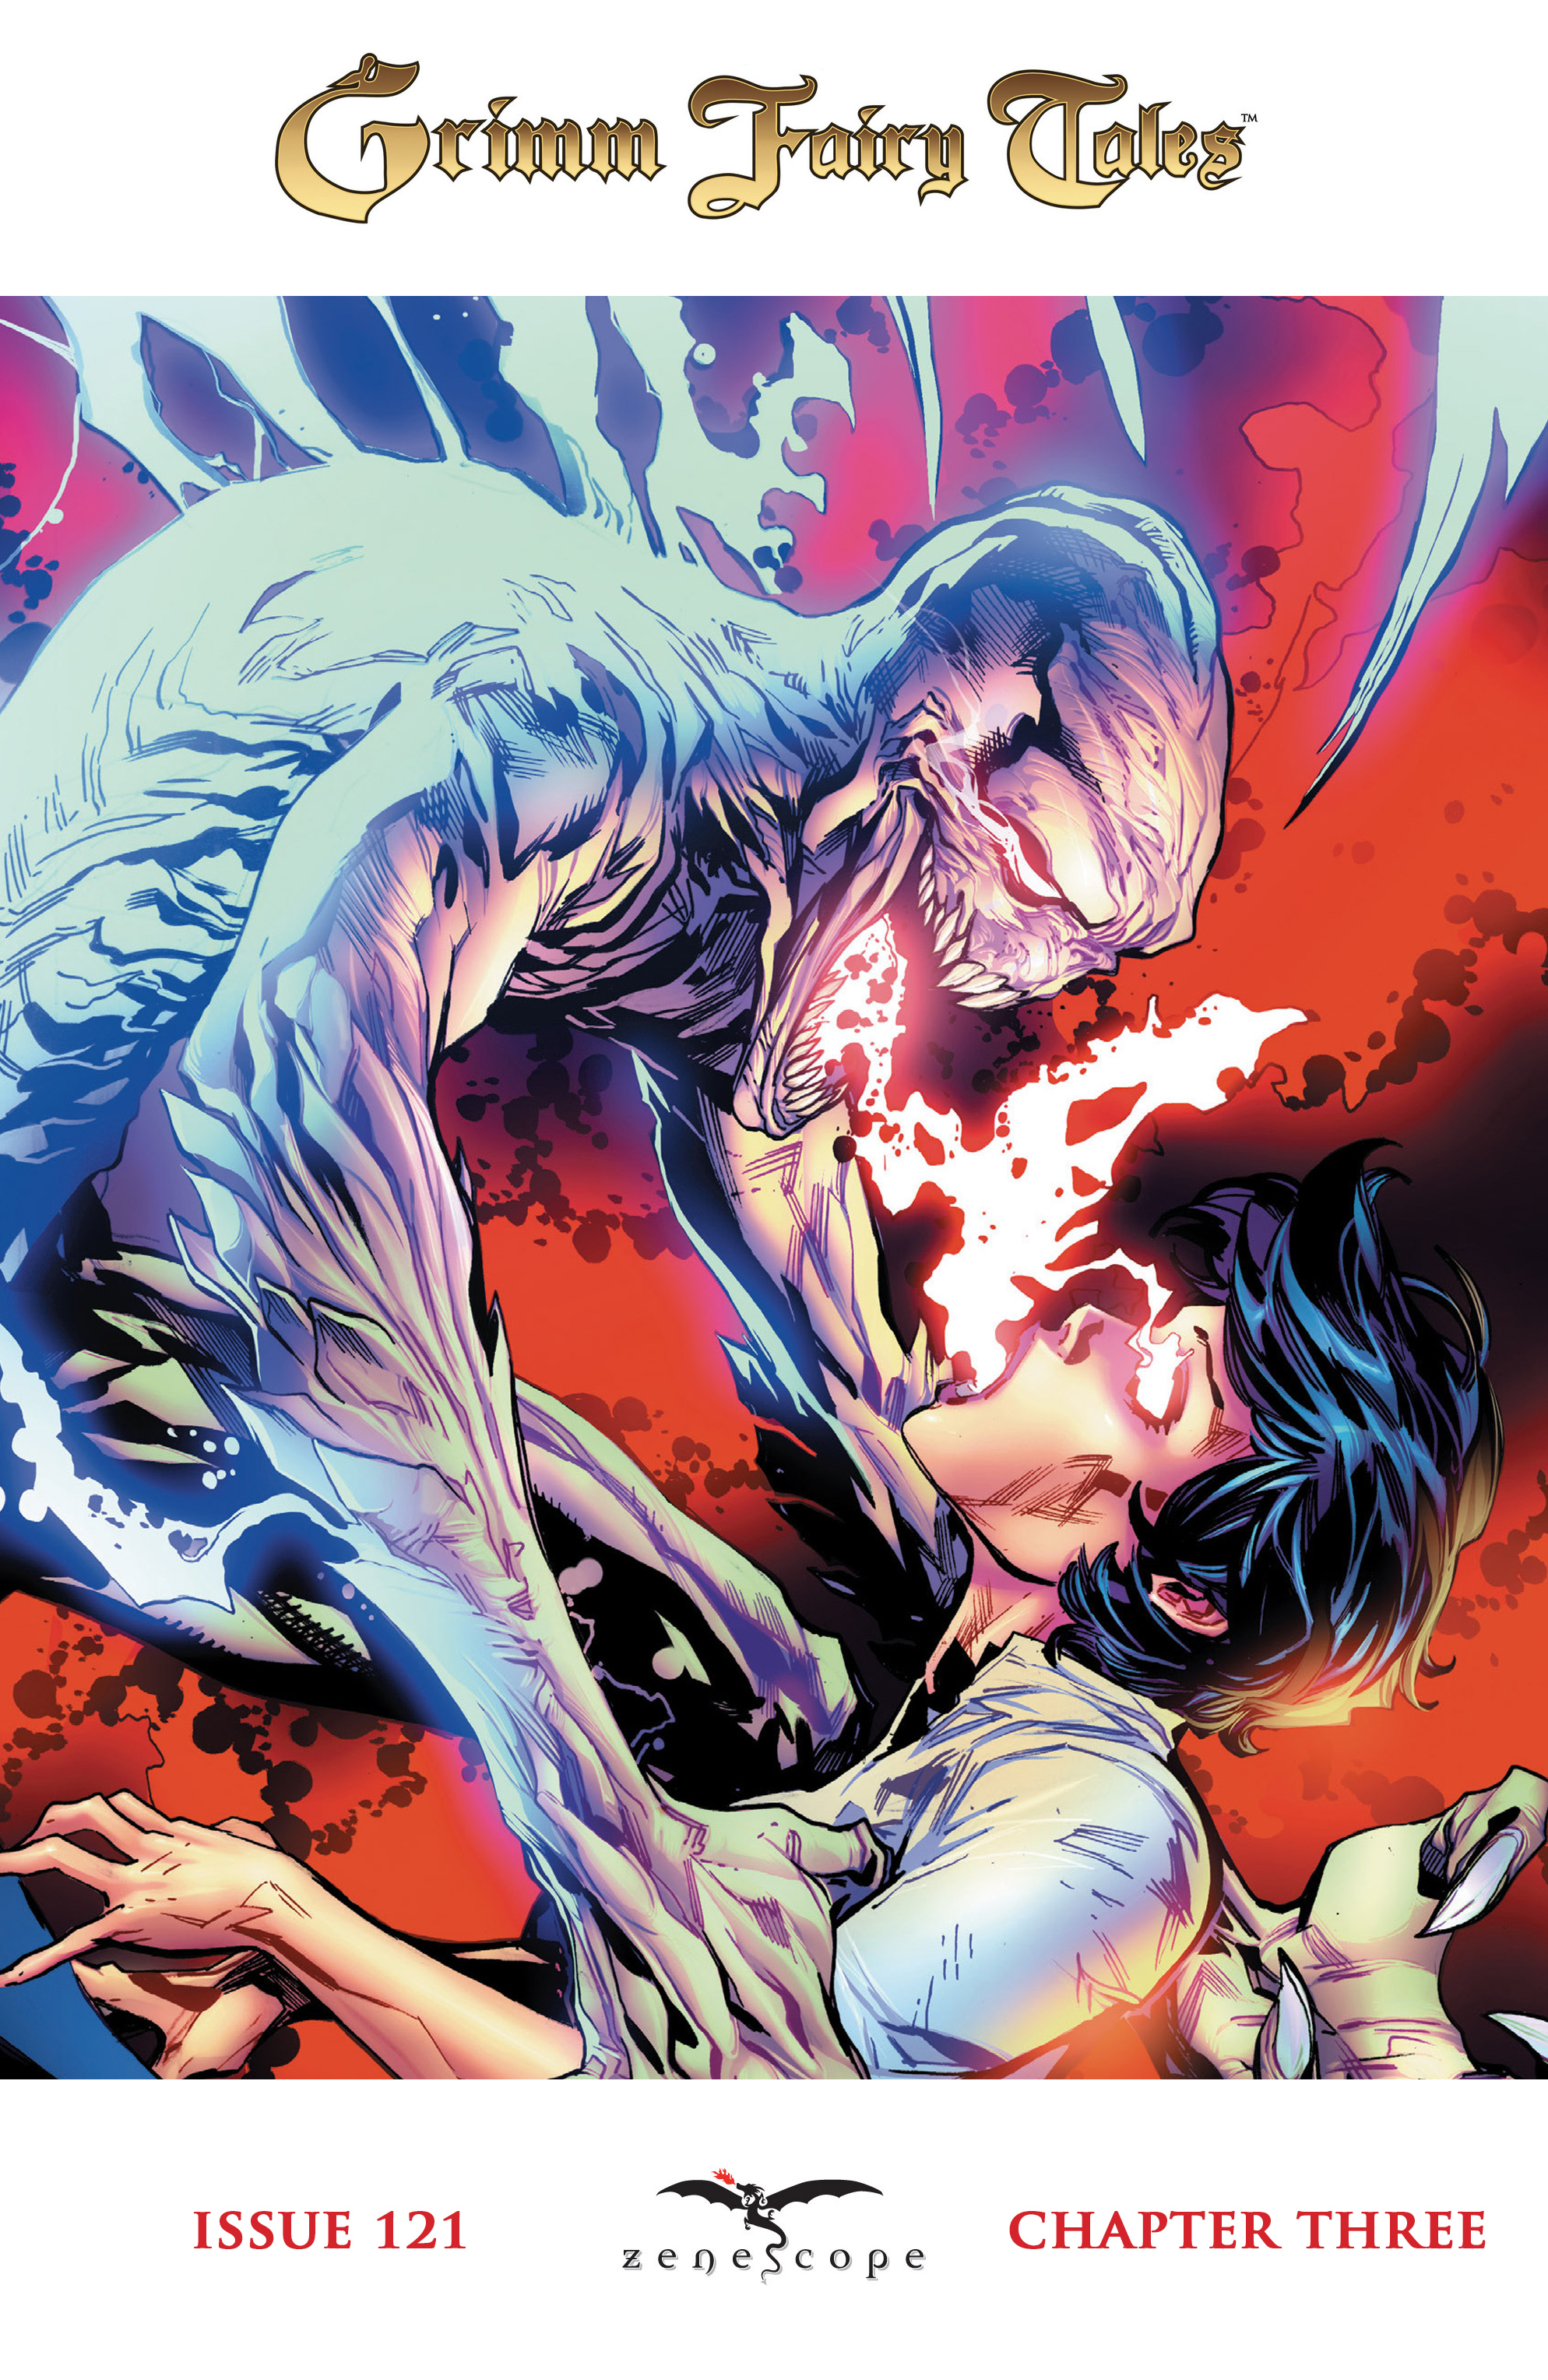 Read online Grimm Fairy Tales: Arcane Acre comic -  Issue # TPB 4 - 53